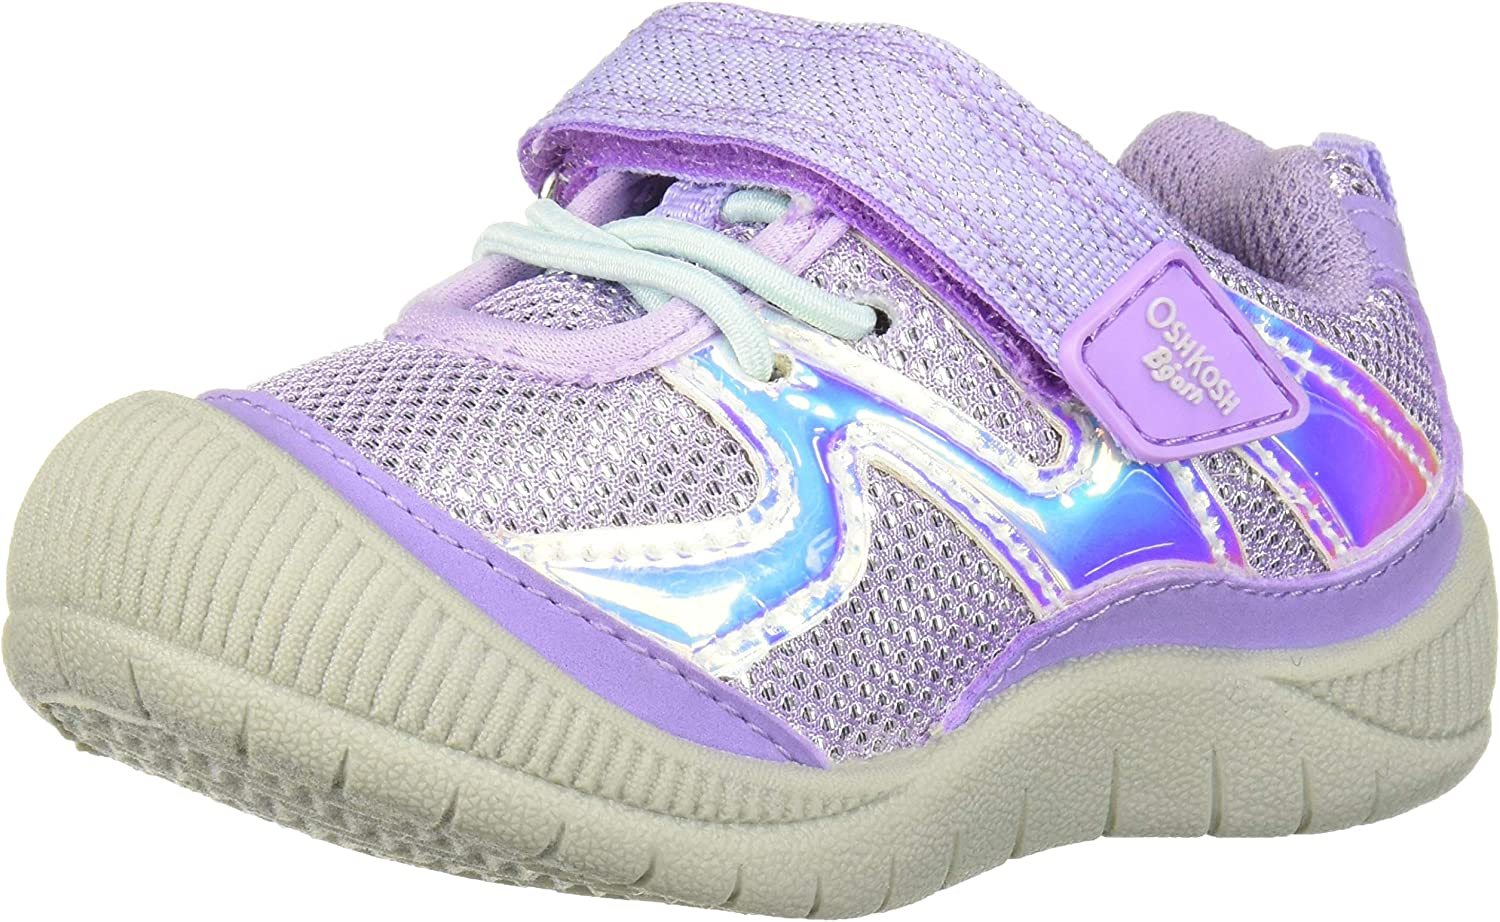 OshKosh B'Gosh specialty shop Toddler and Little Elate Casual Girls service Toe Bump